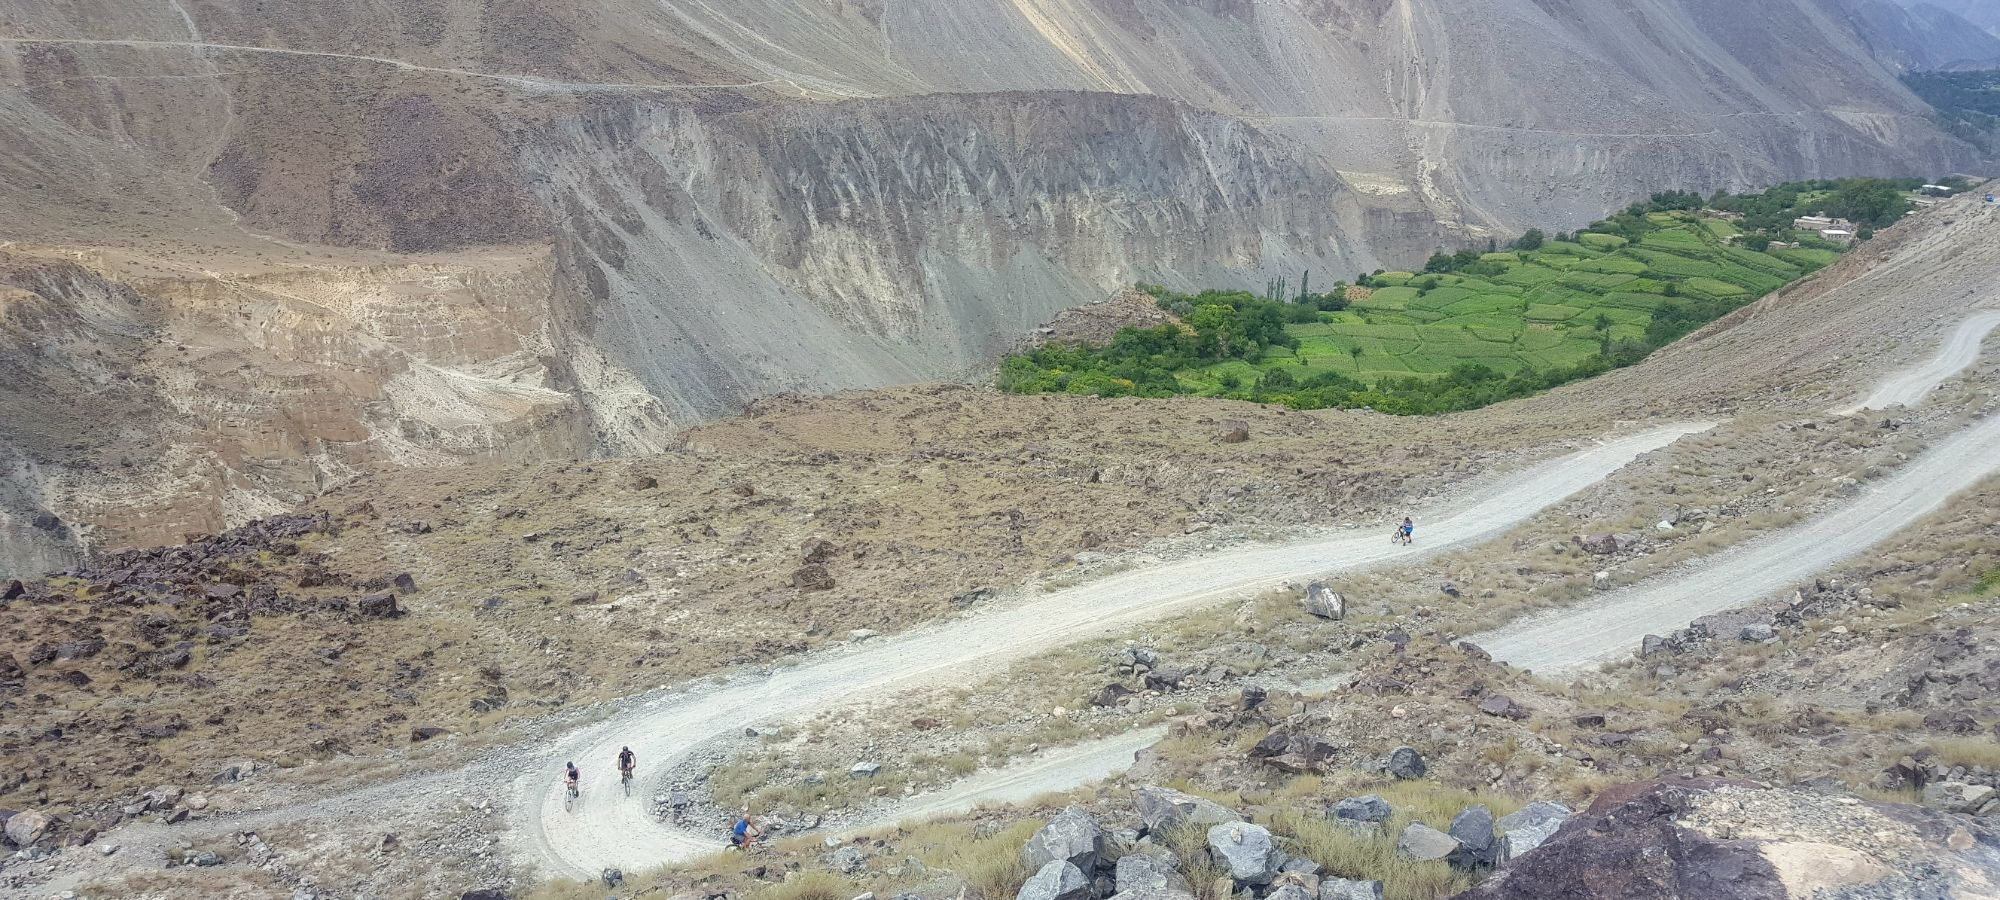 cycling The Karakoram highway